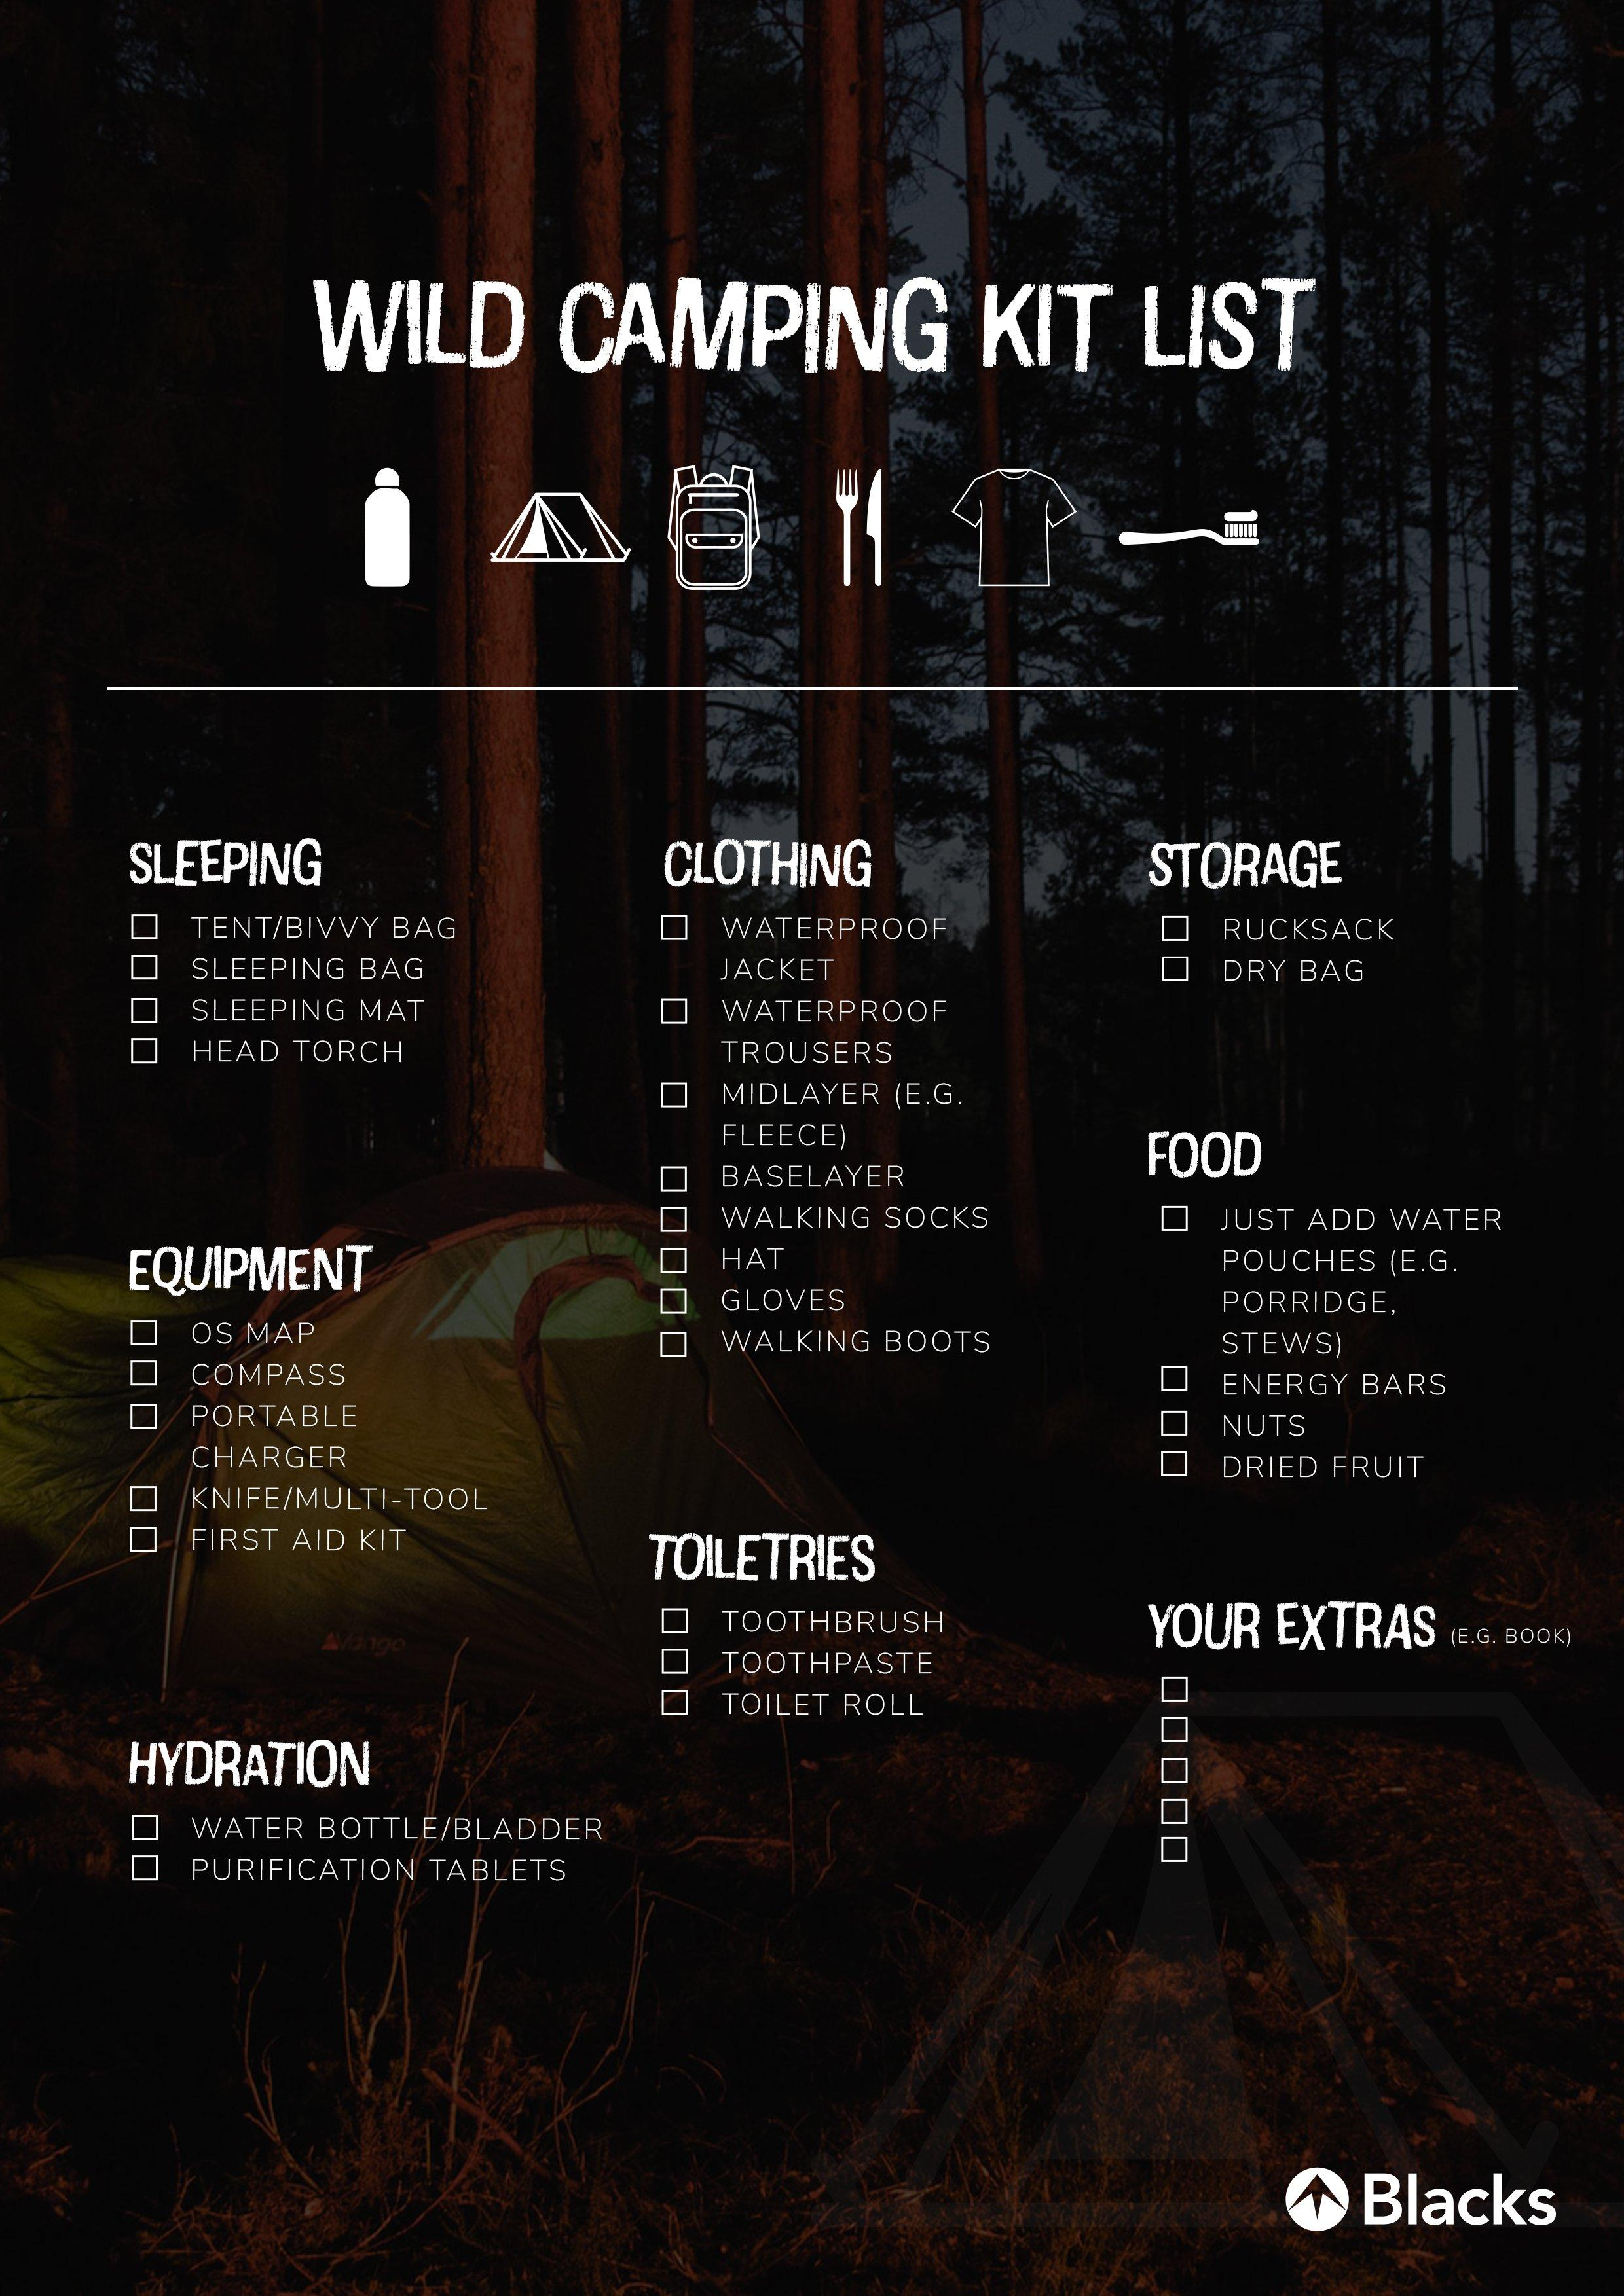 Wild camping kit list. A list of equipment needed for wild camping in the UK